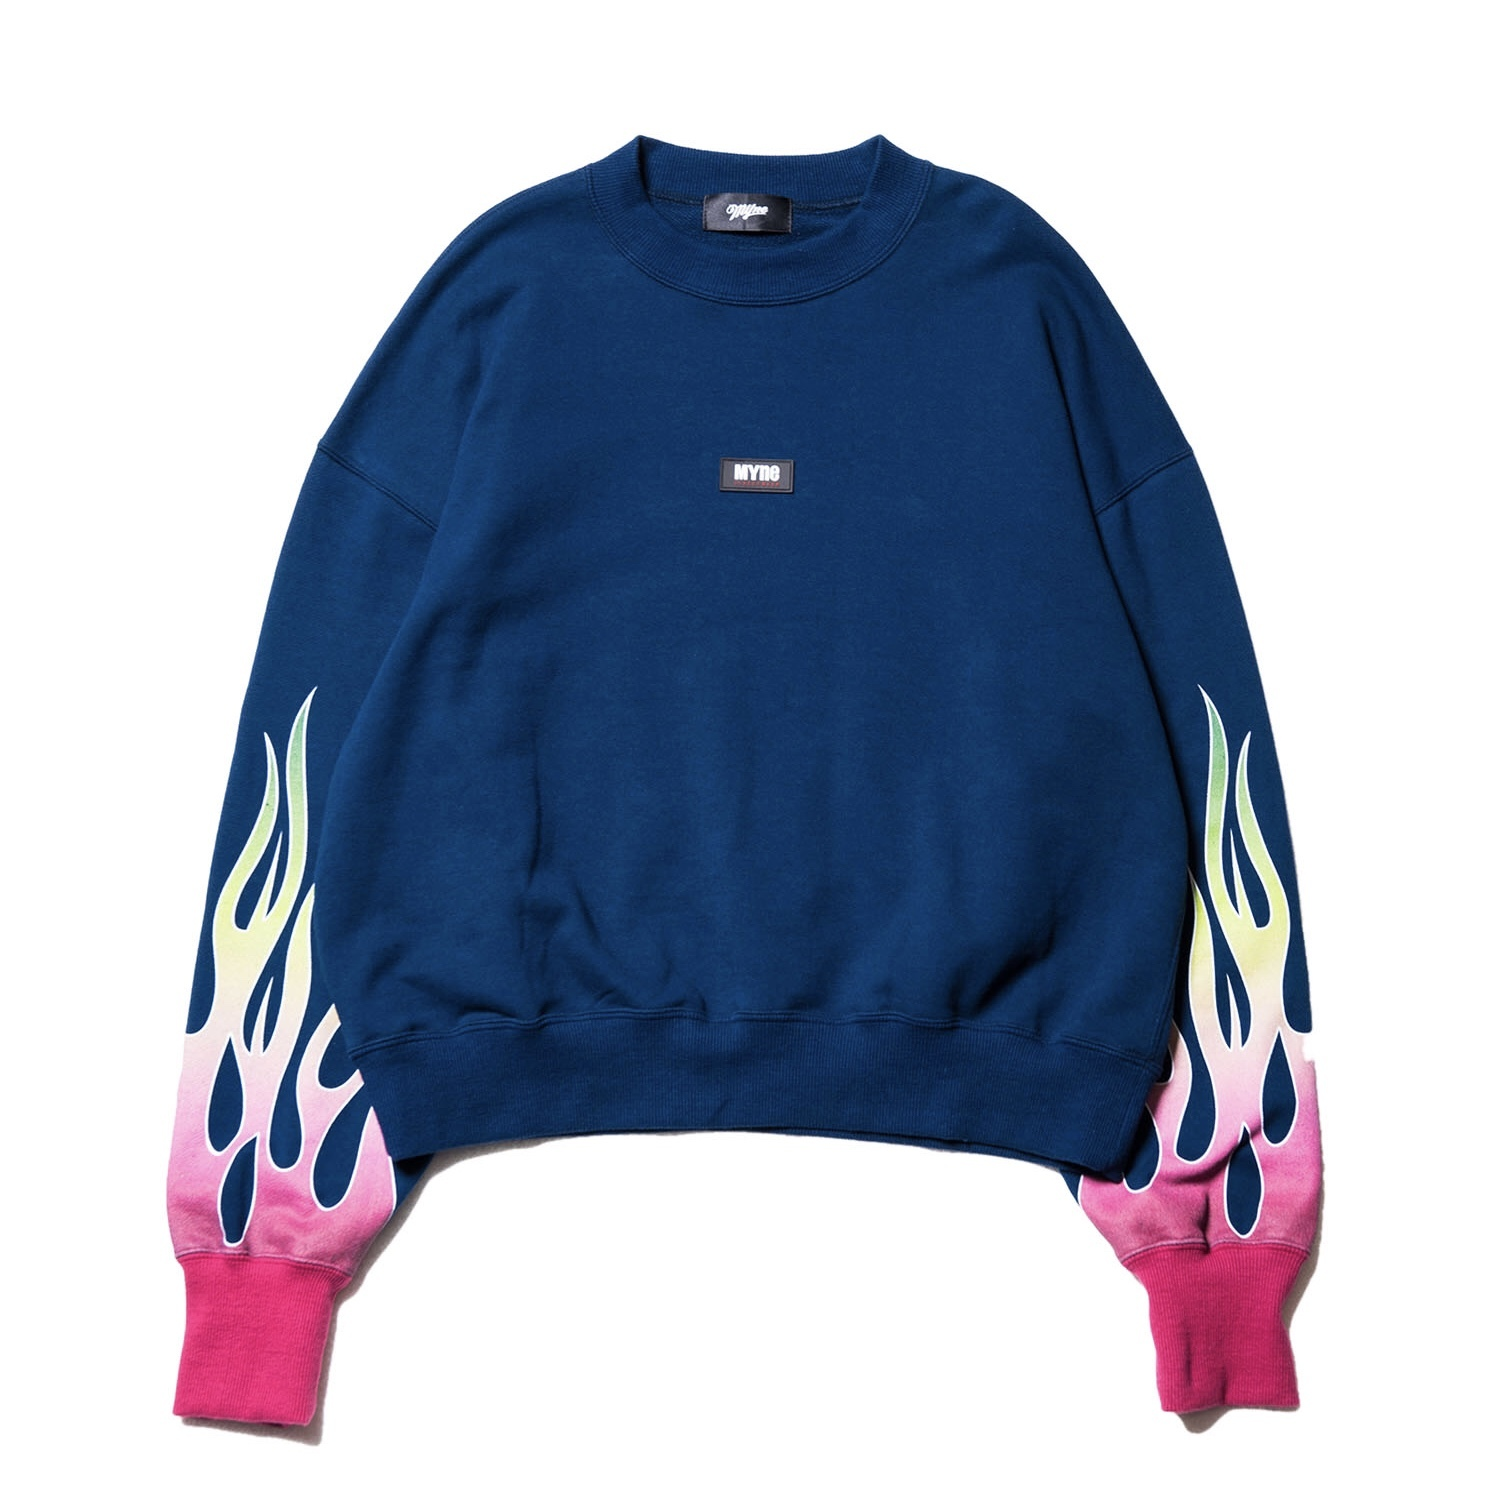 Fire sweat pullover / NAVY - 画像1